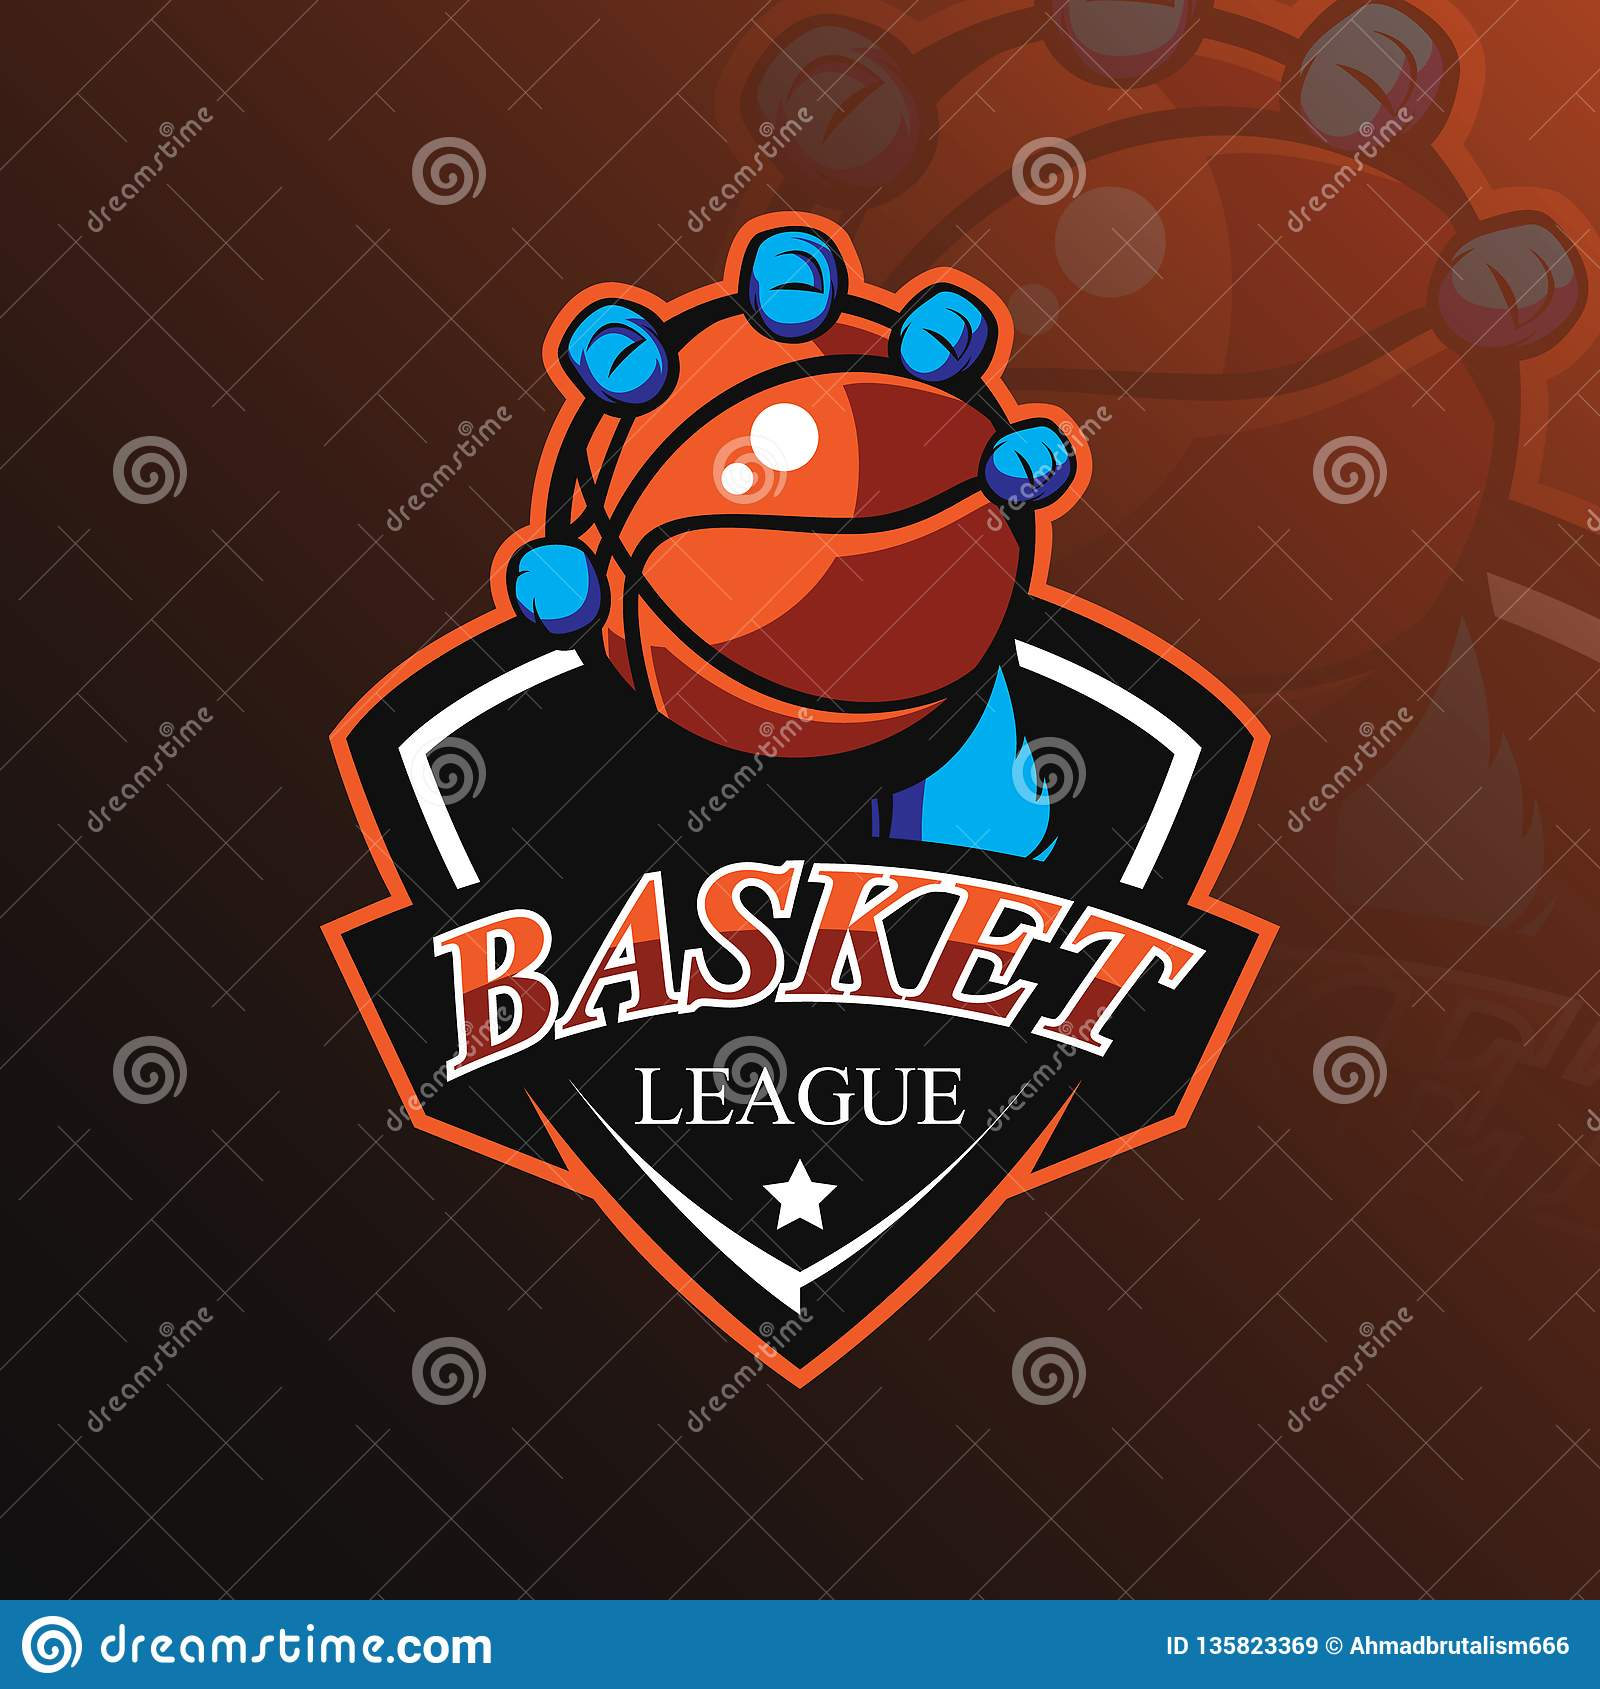 Basketball mascot logo design vector with modern illustration concept style for badge, emblem and tshirt printing. basketball